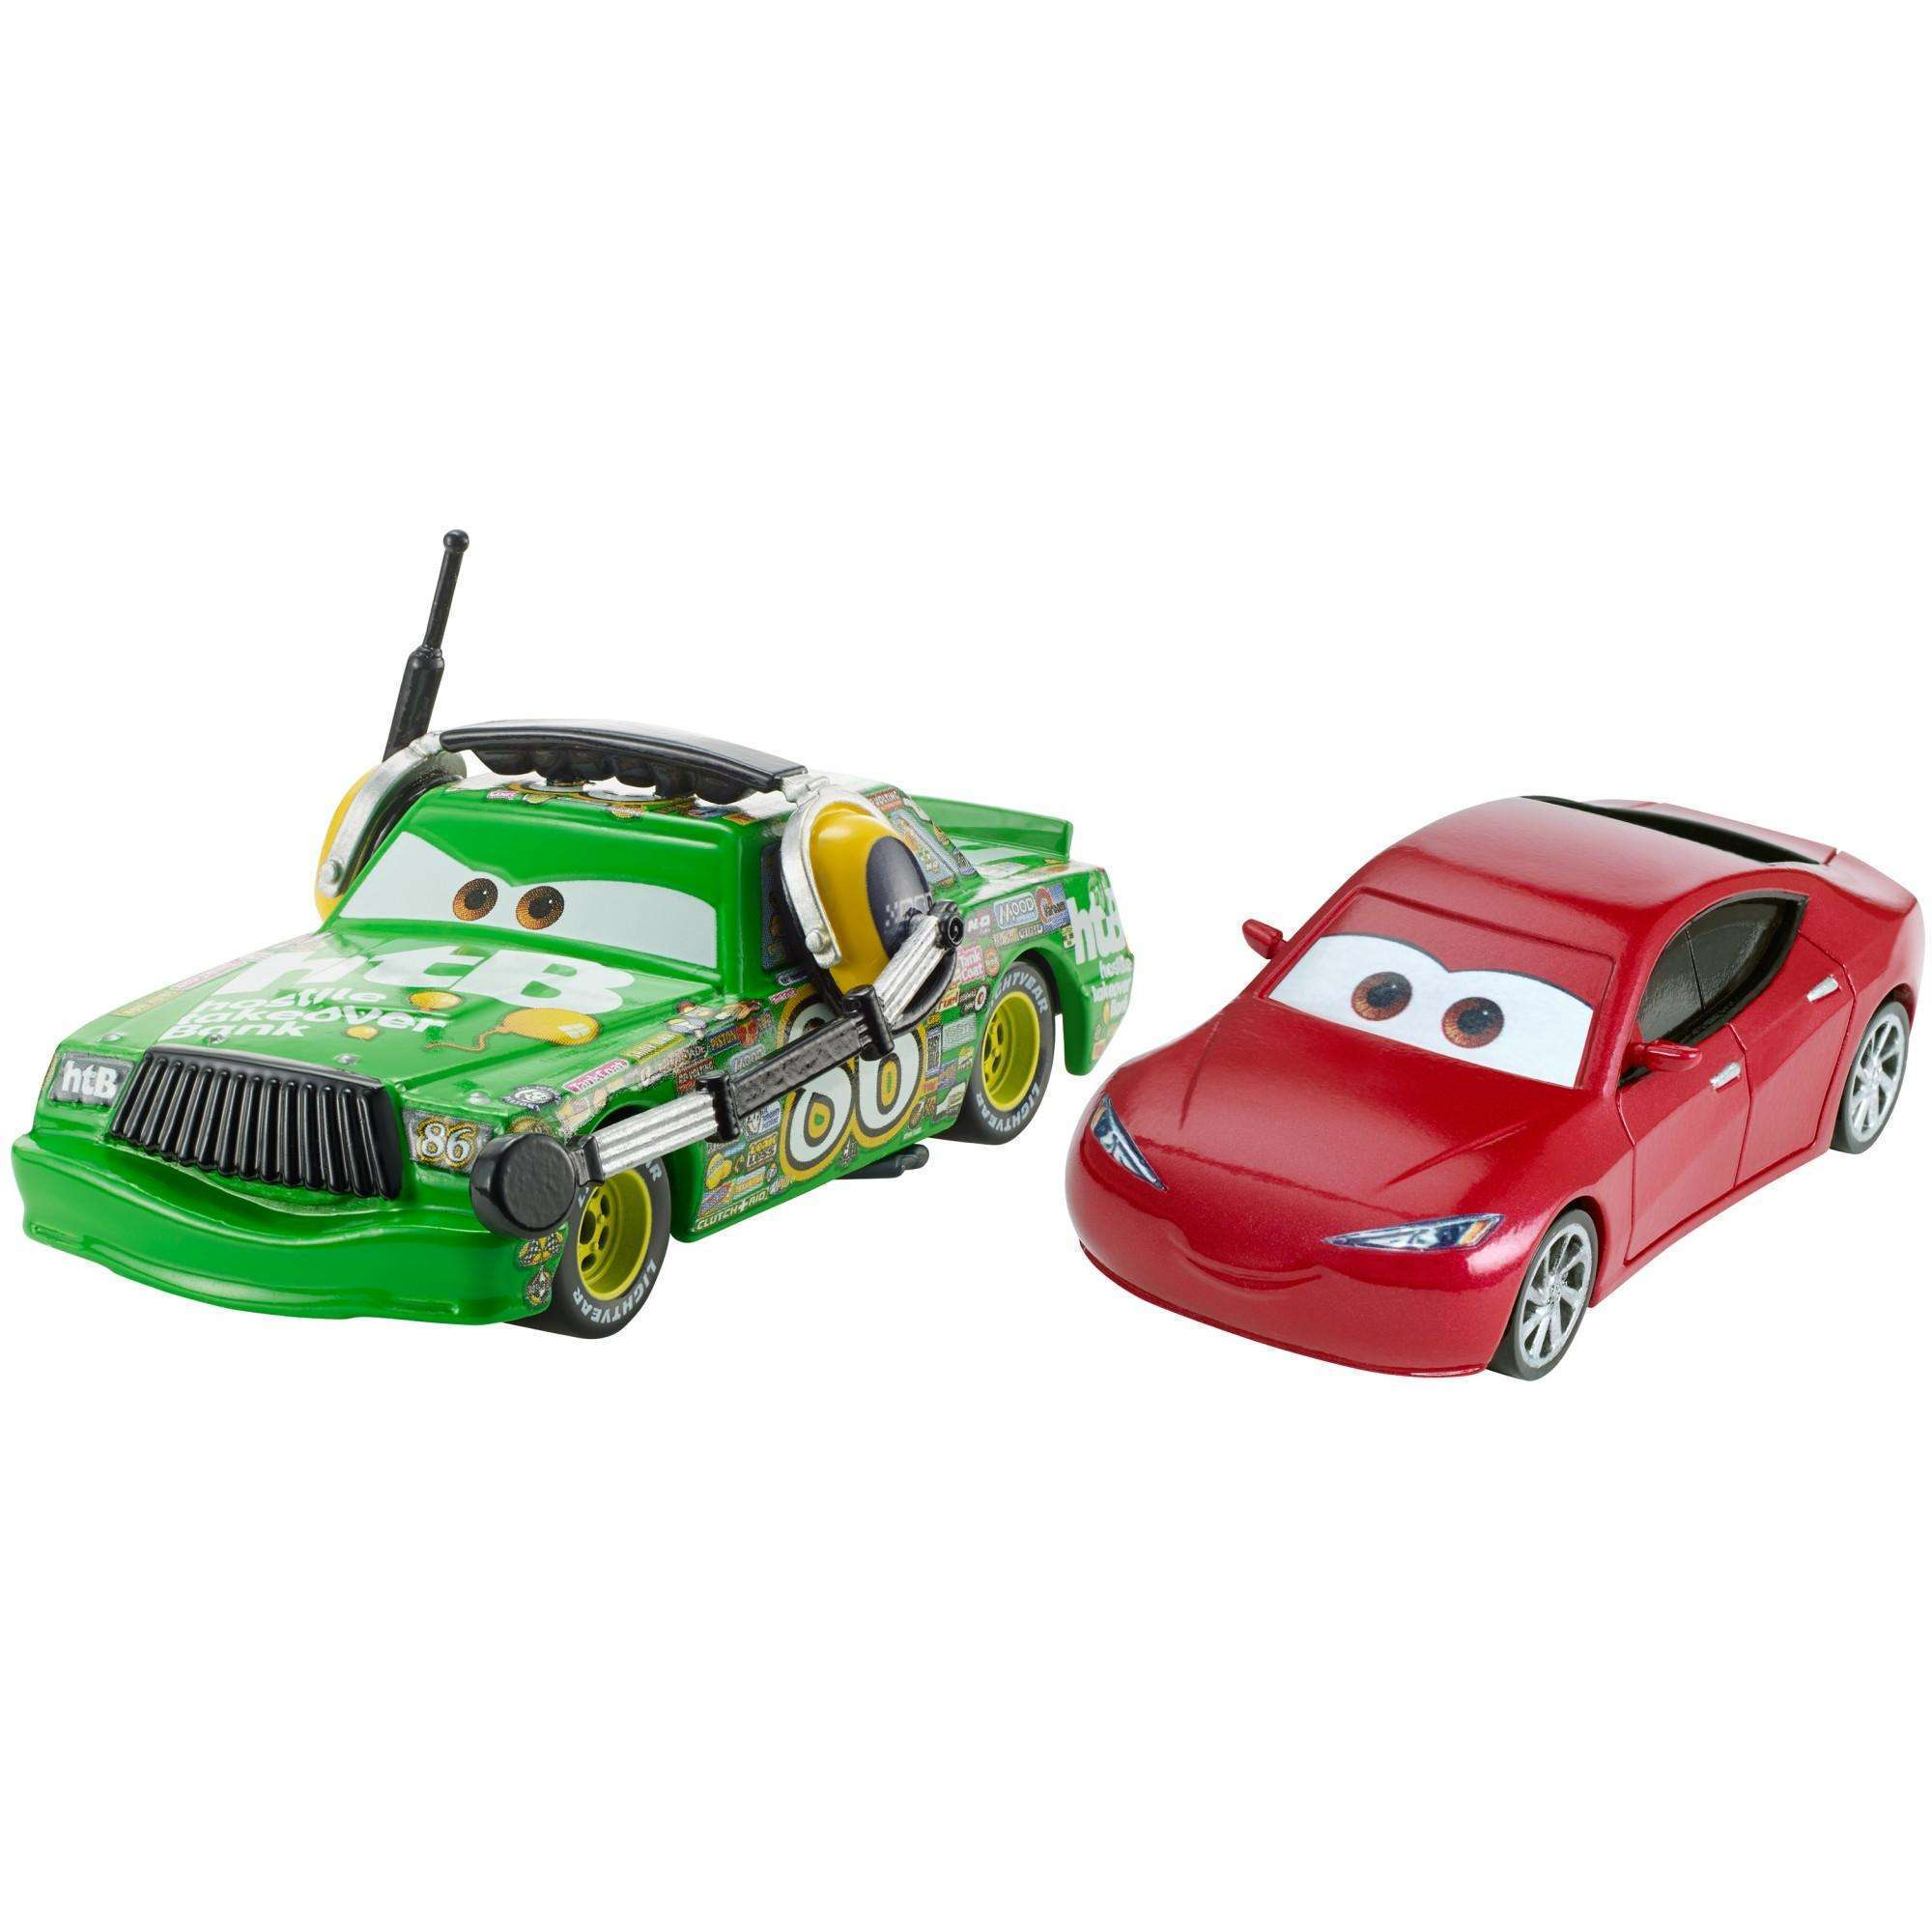 Disney/Pixar Cars 3 Chick Hicks with Headset & Natalie Certain Die-cast Vehicle 2-Pack